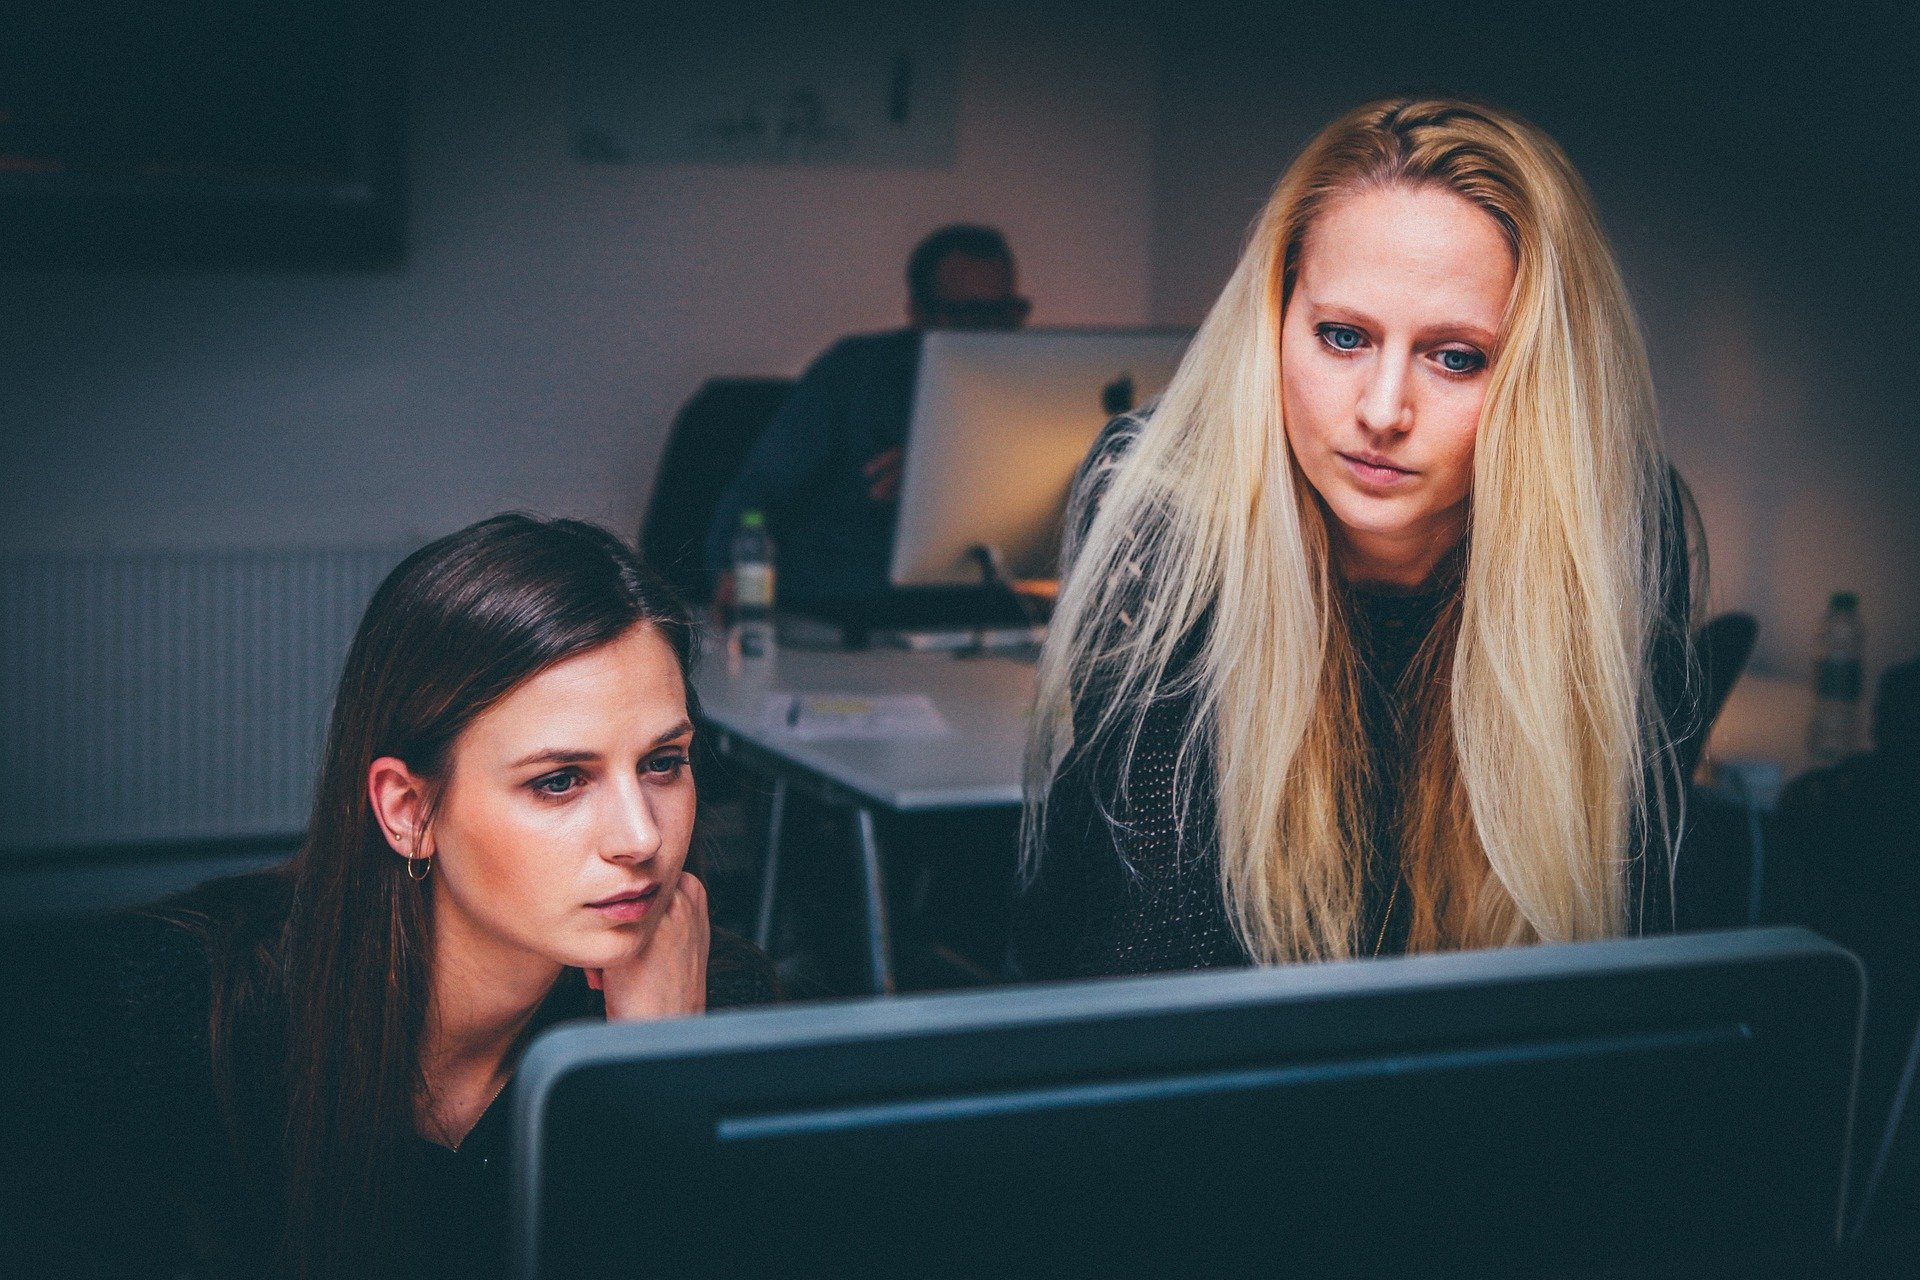 Two women working at a computer screen